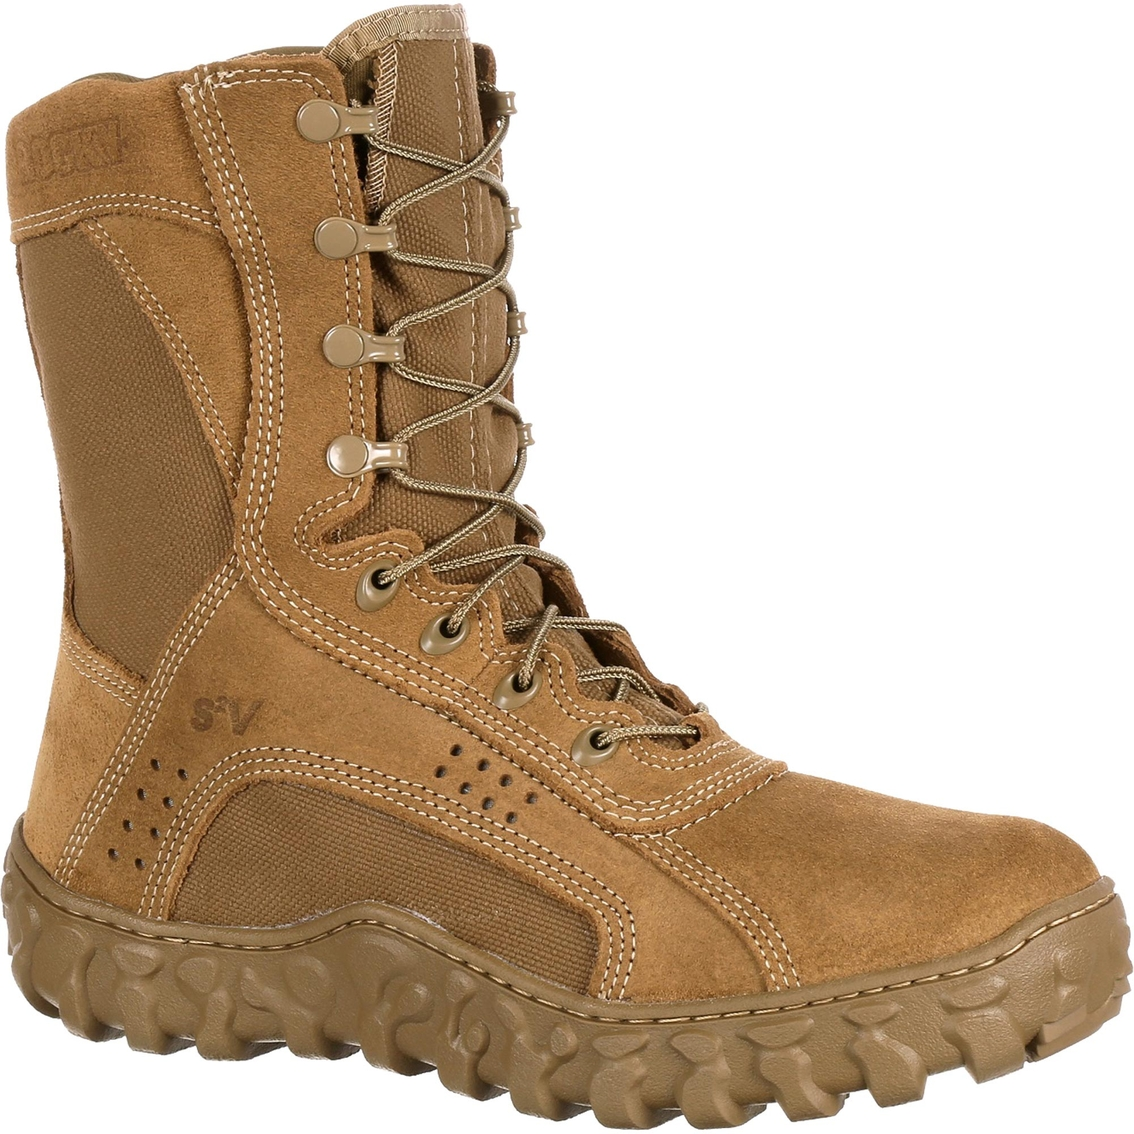 rocky coyote s2v tactical boots coyote brown